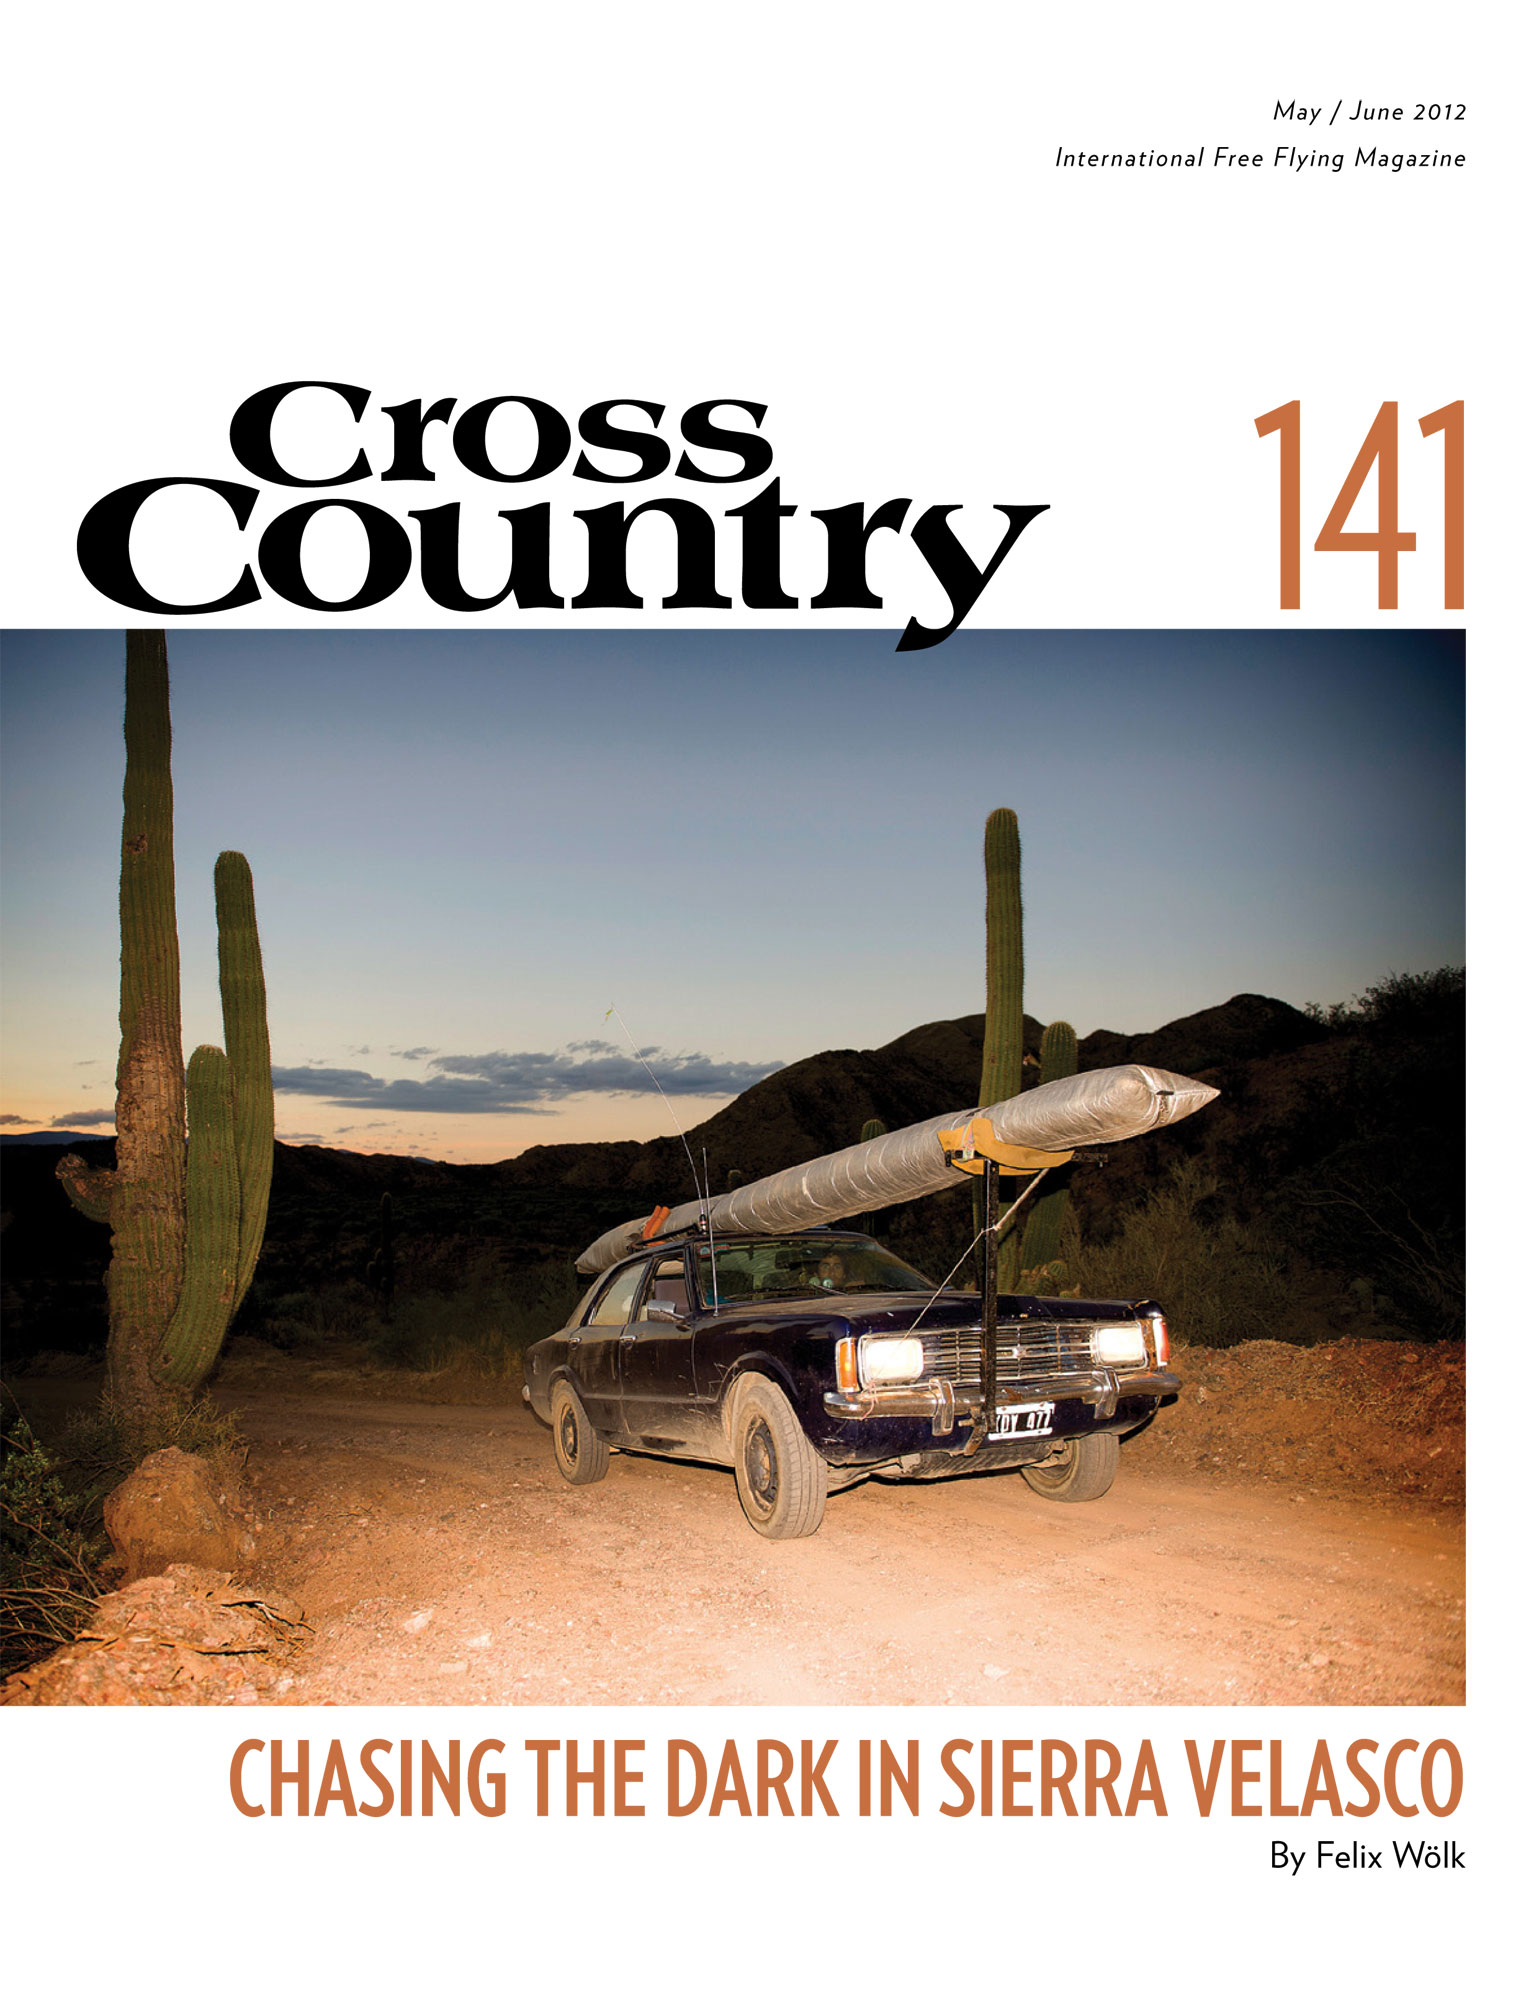 Coverpage of the 141 CrossCountry Magazin mady by Felix Wölk